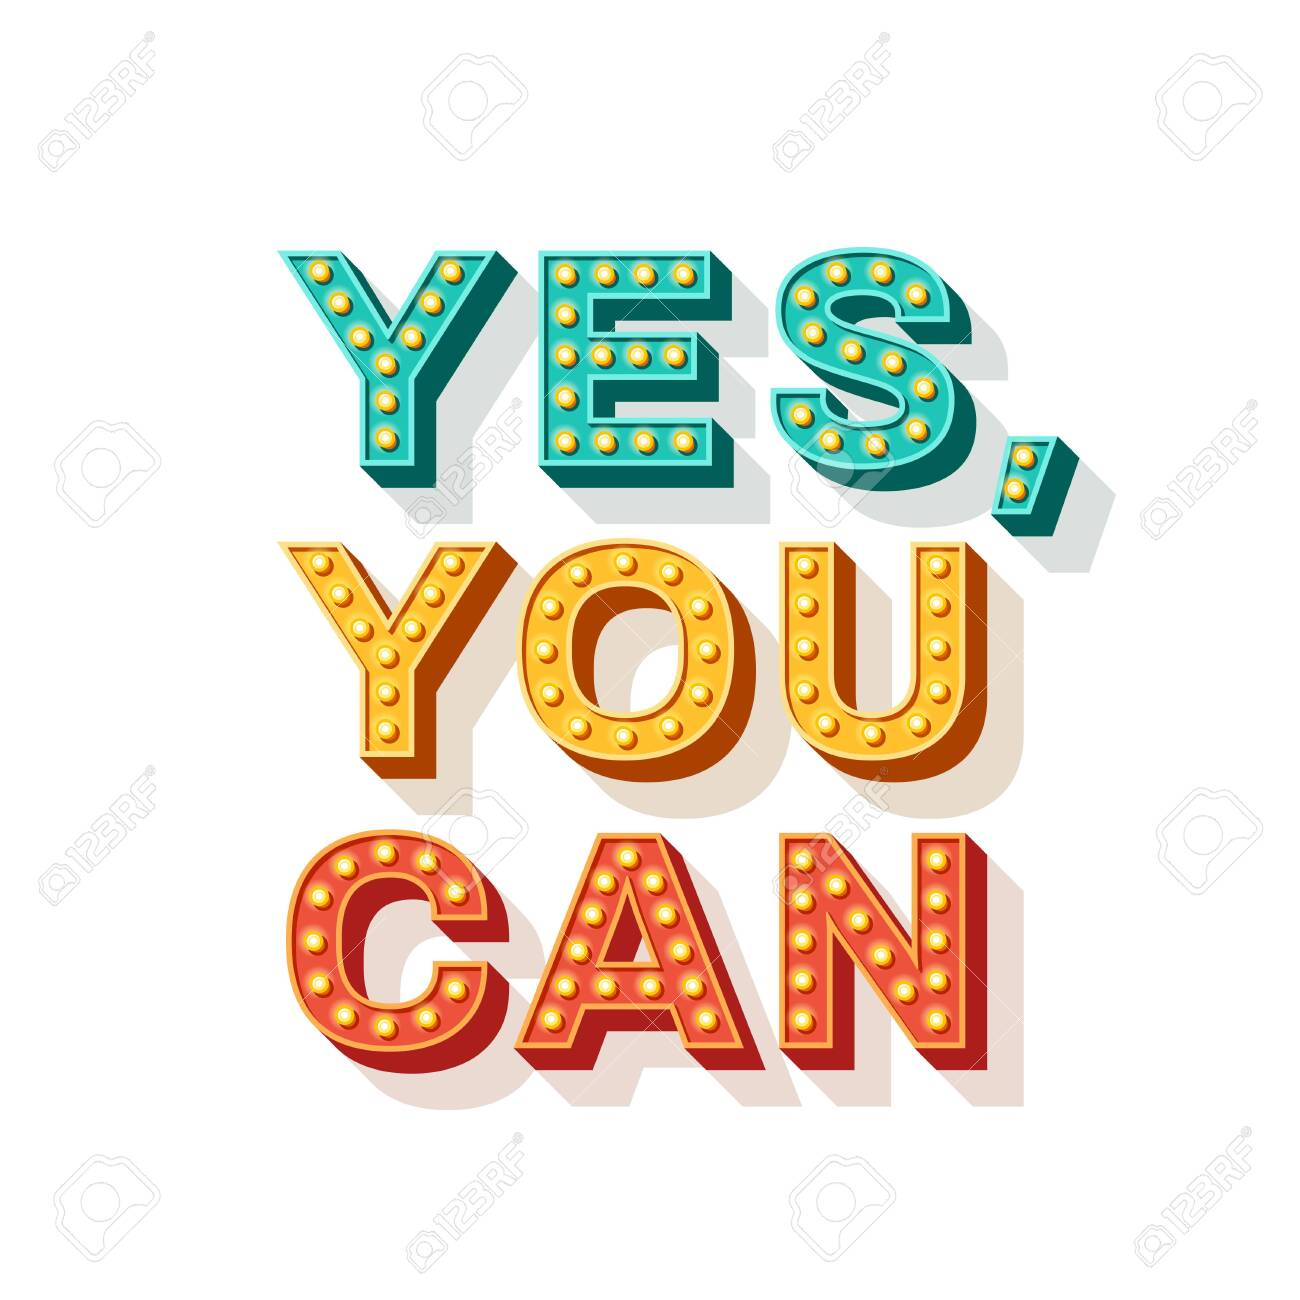 Yes You Can Qoute Royalty Free Cliparts Vectors And Stock Illustration Image 123916887